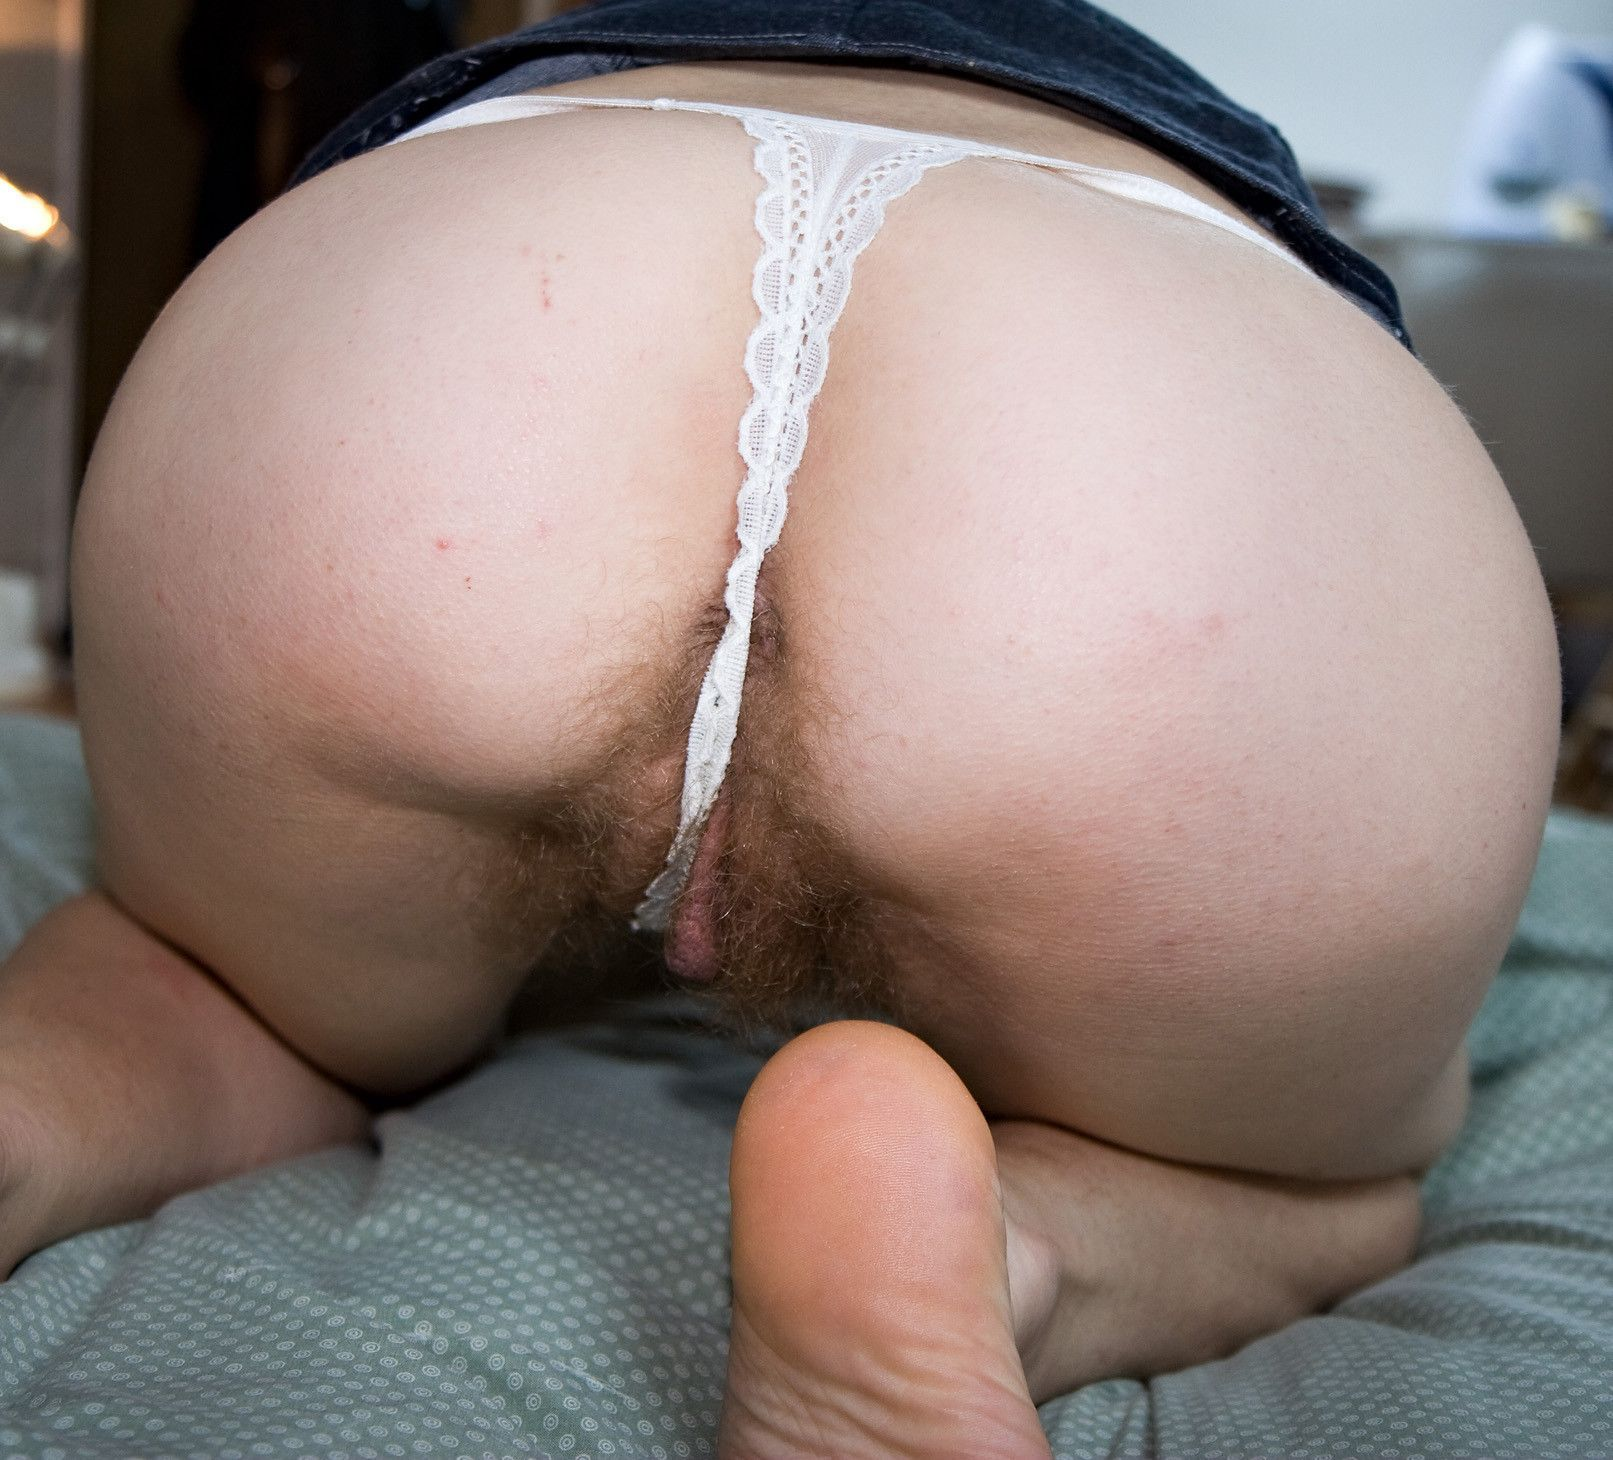 Big pussy butt hairy